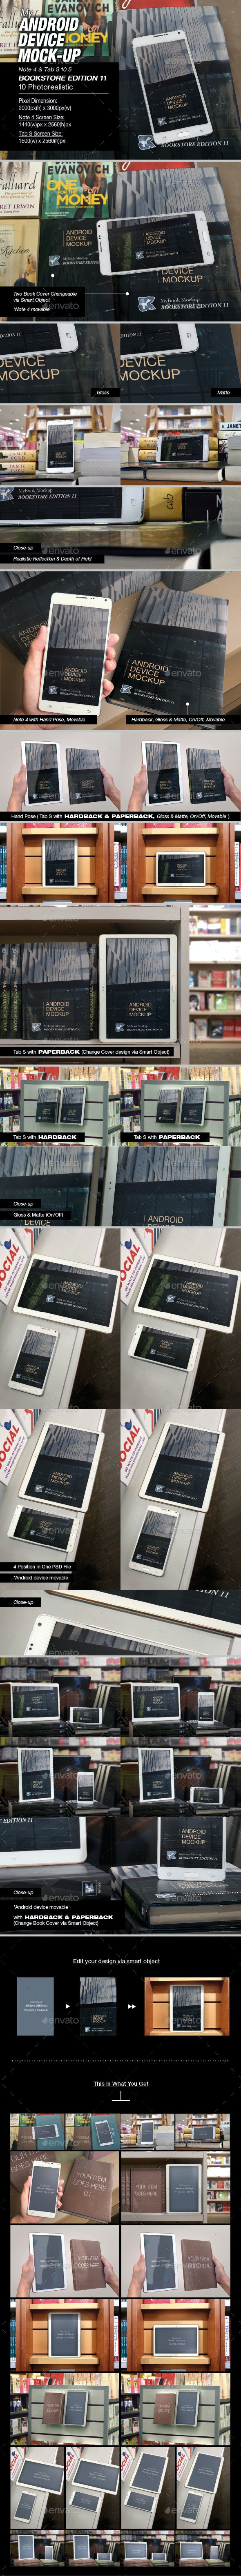 myAndroid Device Mock-up - Mobile Displays